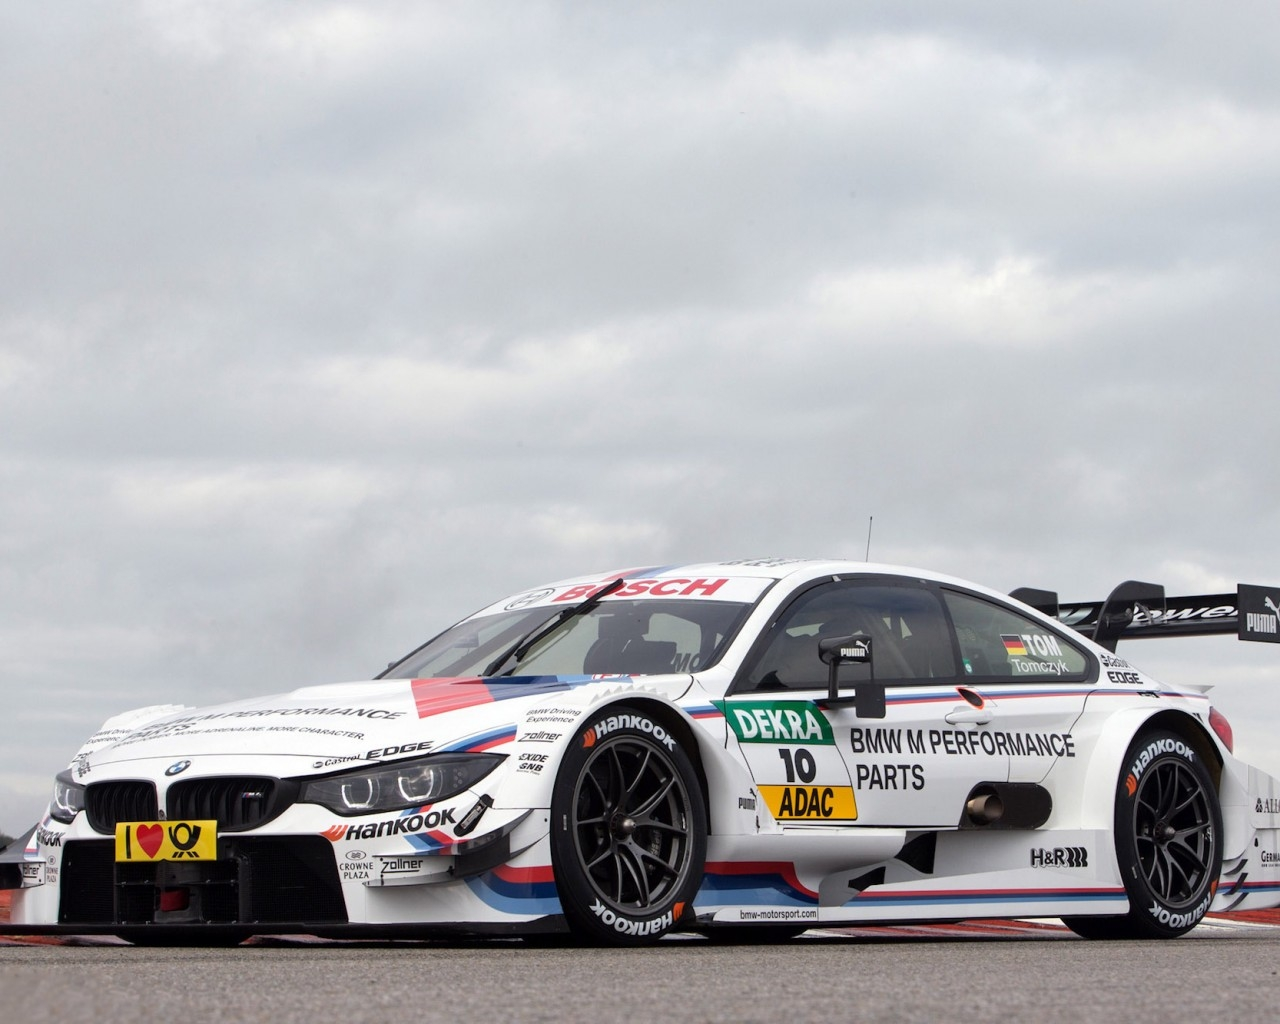 bmw-m-dtm-Picture-Bmw-M-Dtm-Cars-Images-within-Bmw-M-wallpaper-wp3401099